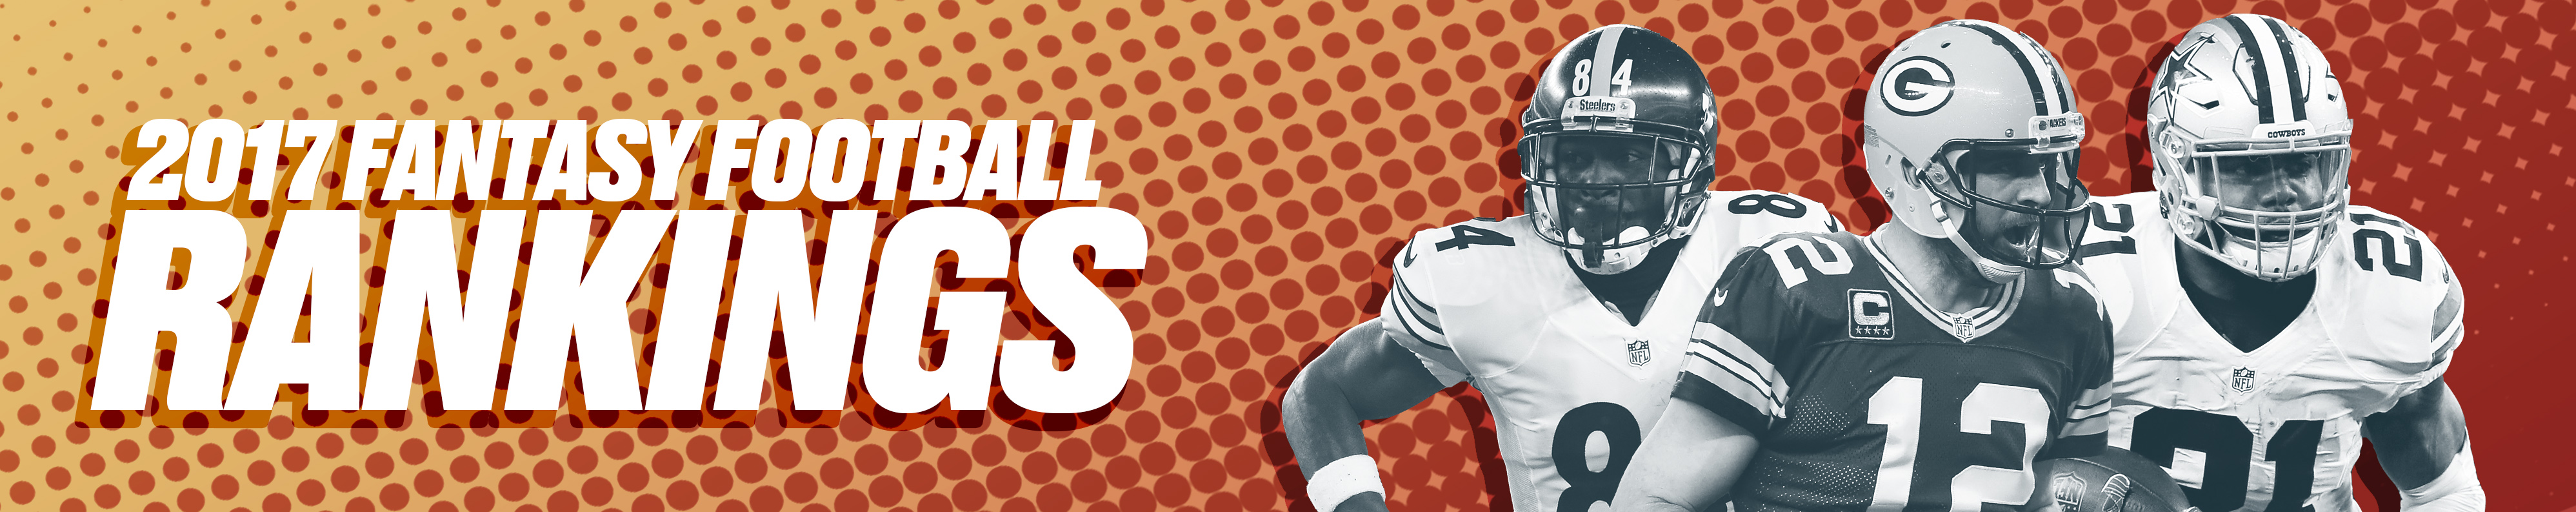 best fantasy football projections Get the latest fantasy football player rankings from cbssportscom.